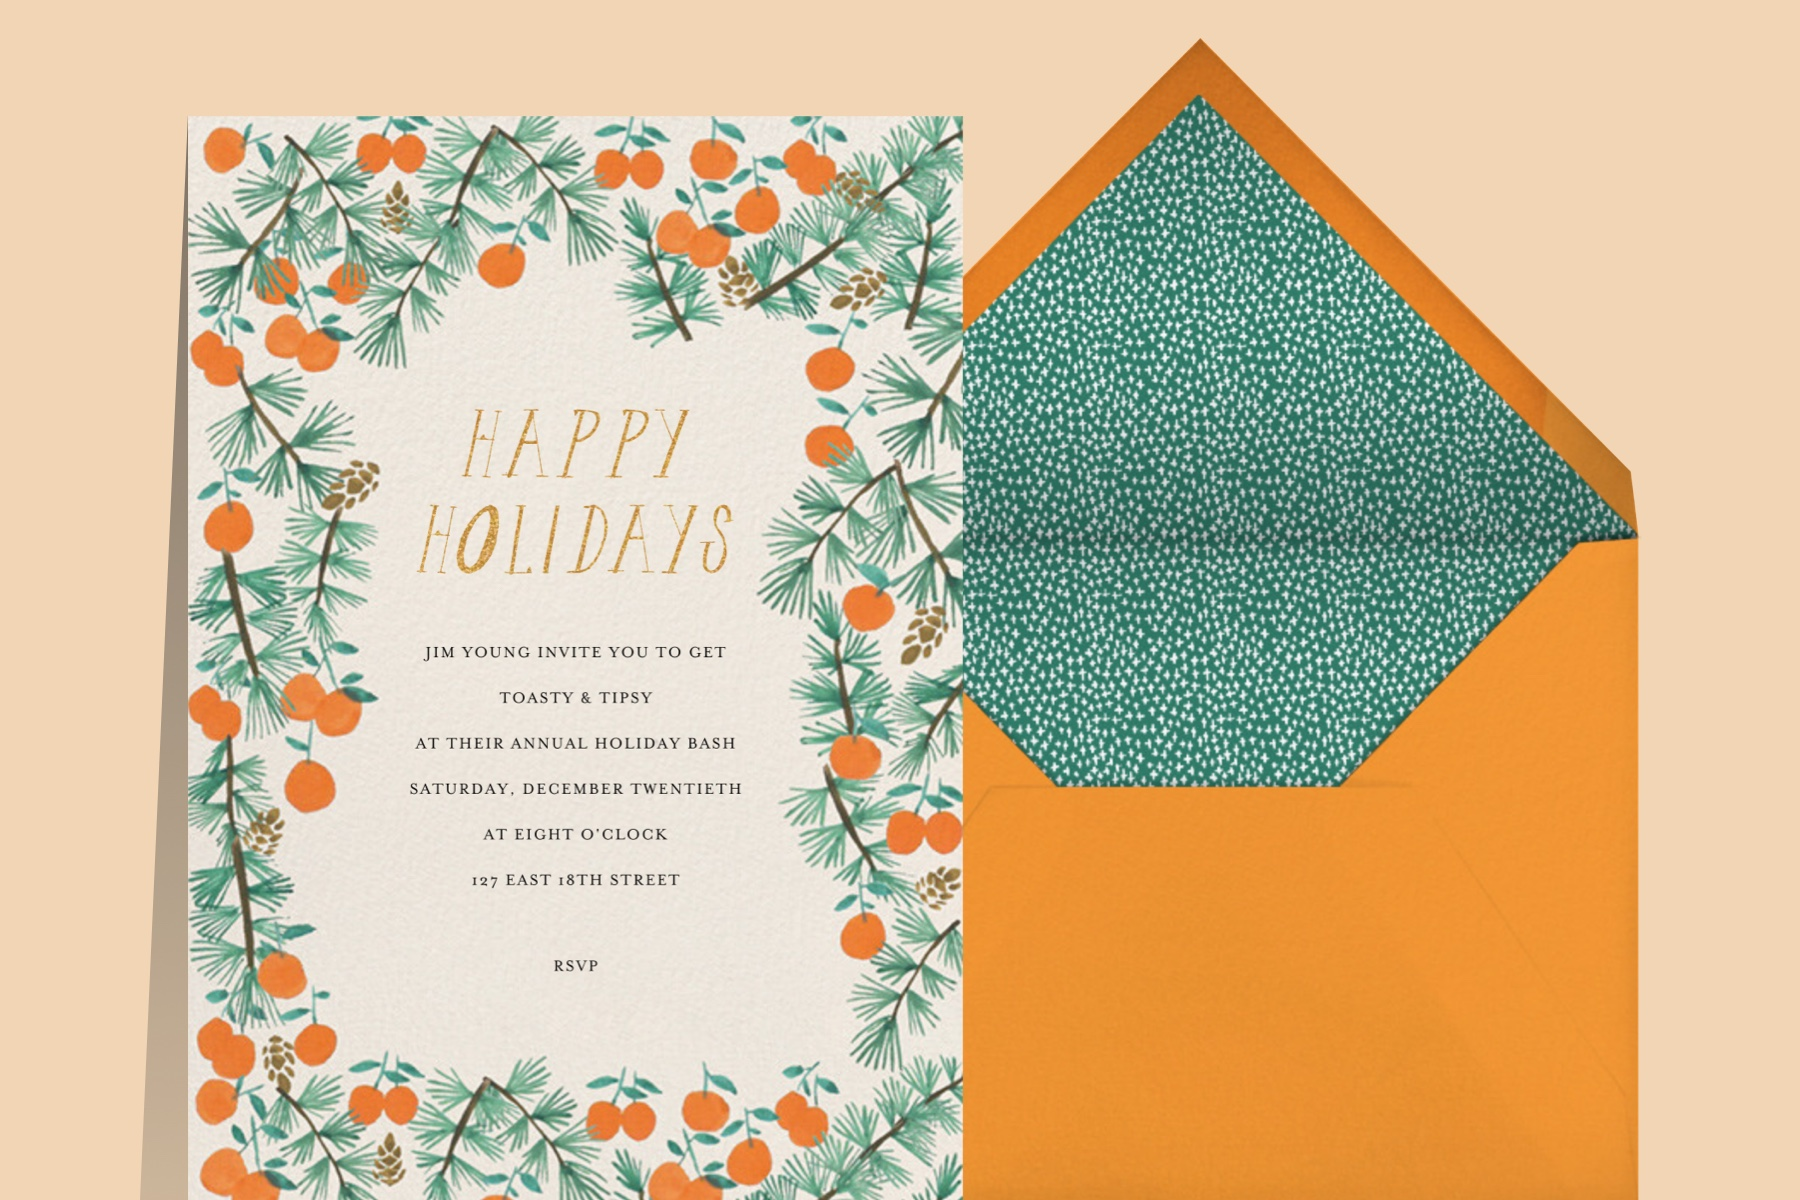 citrus holiday card design ideas from Paperless Post